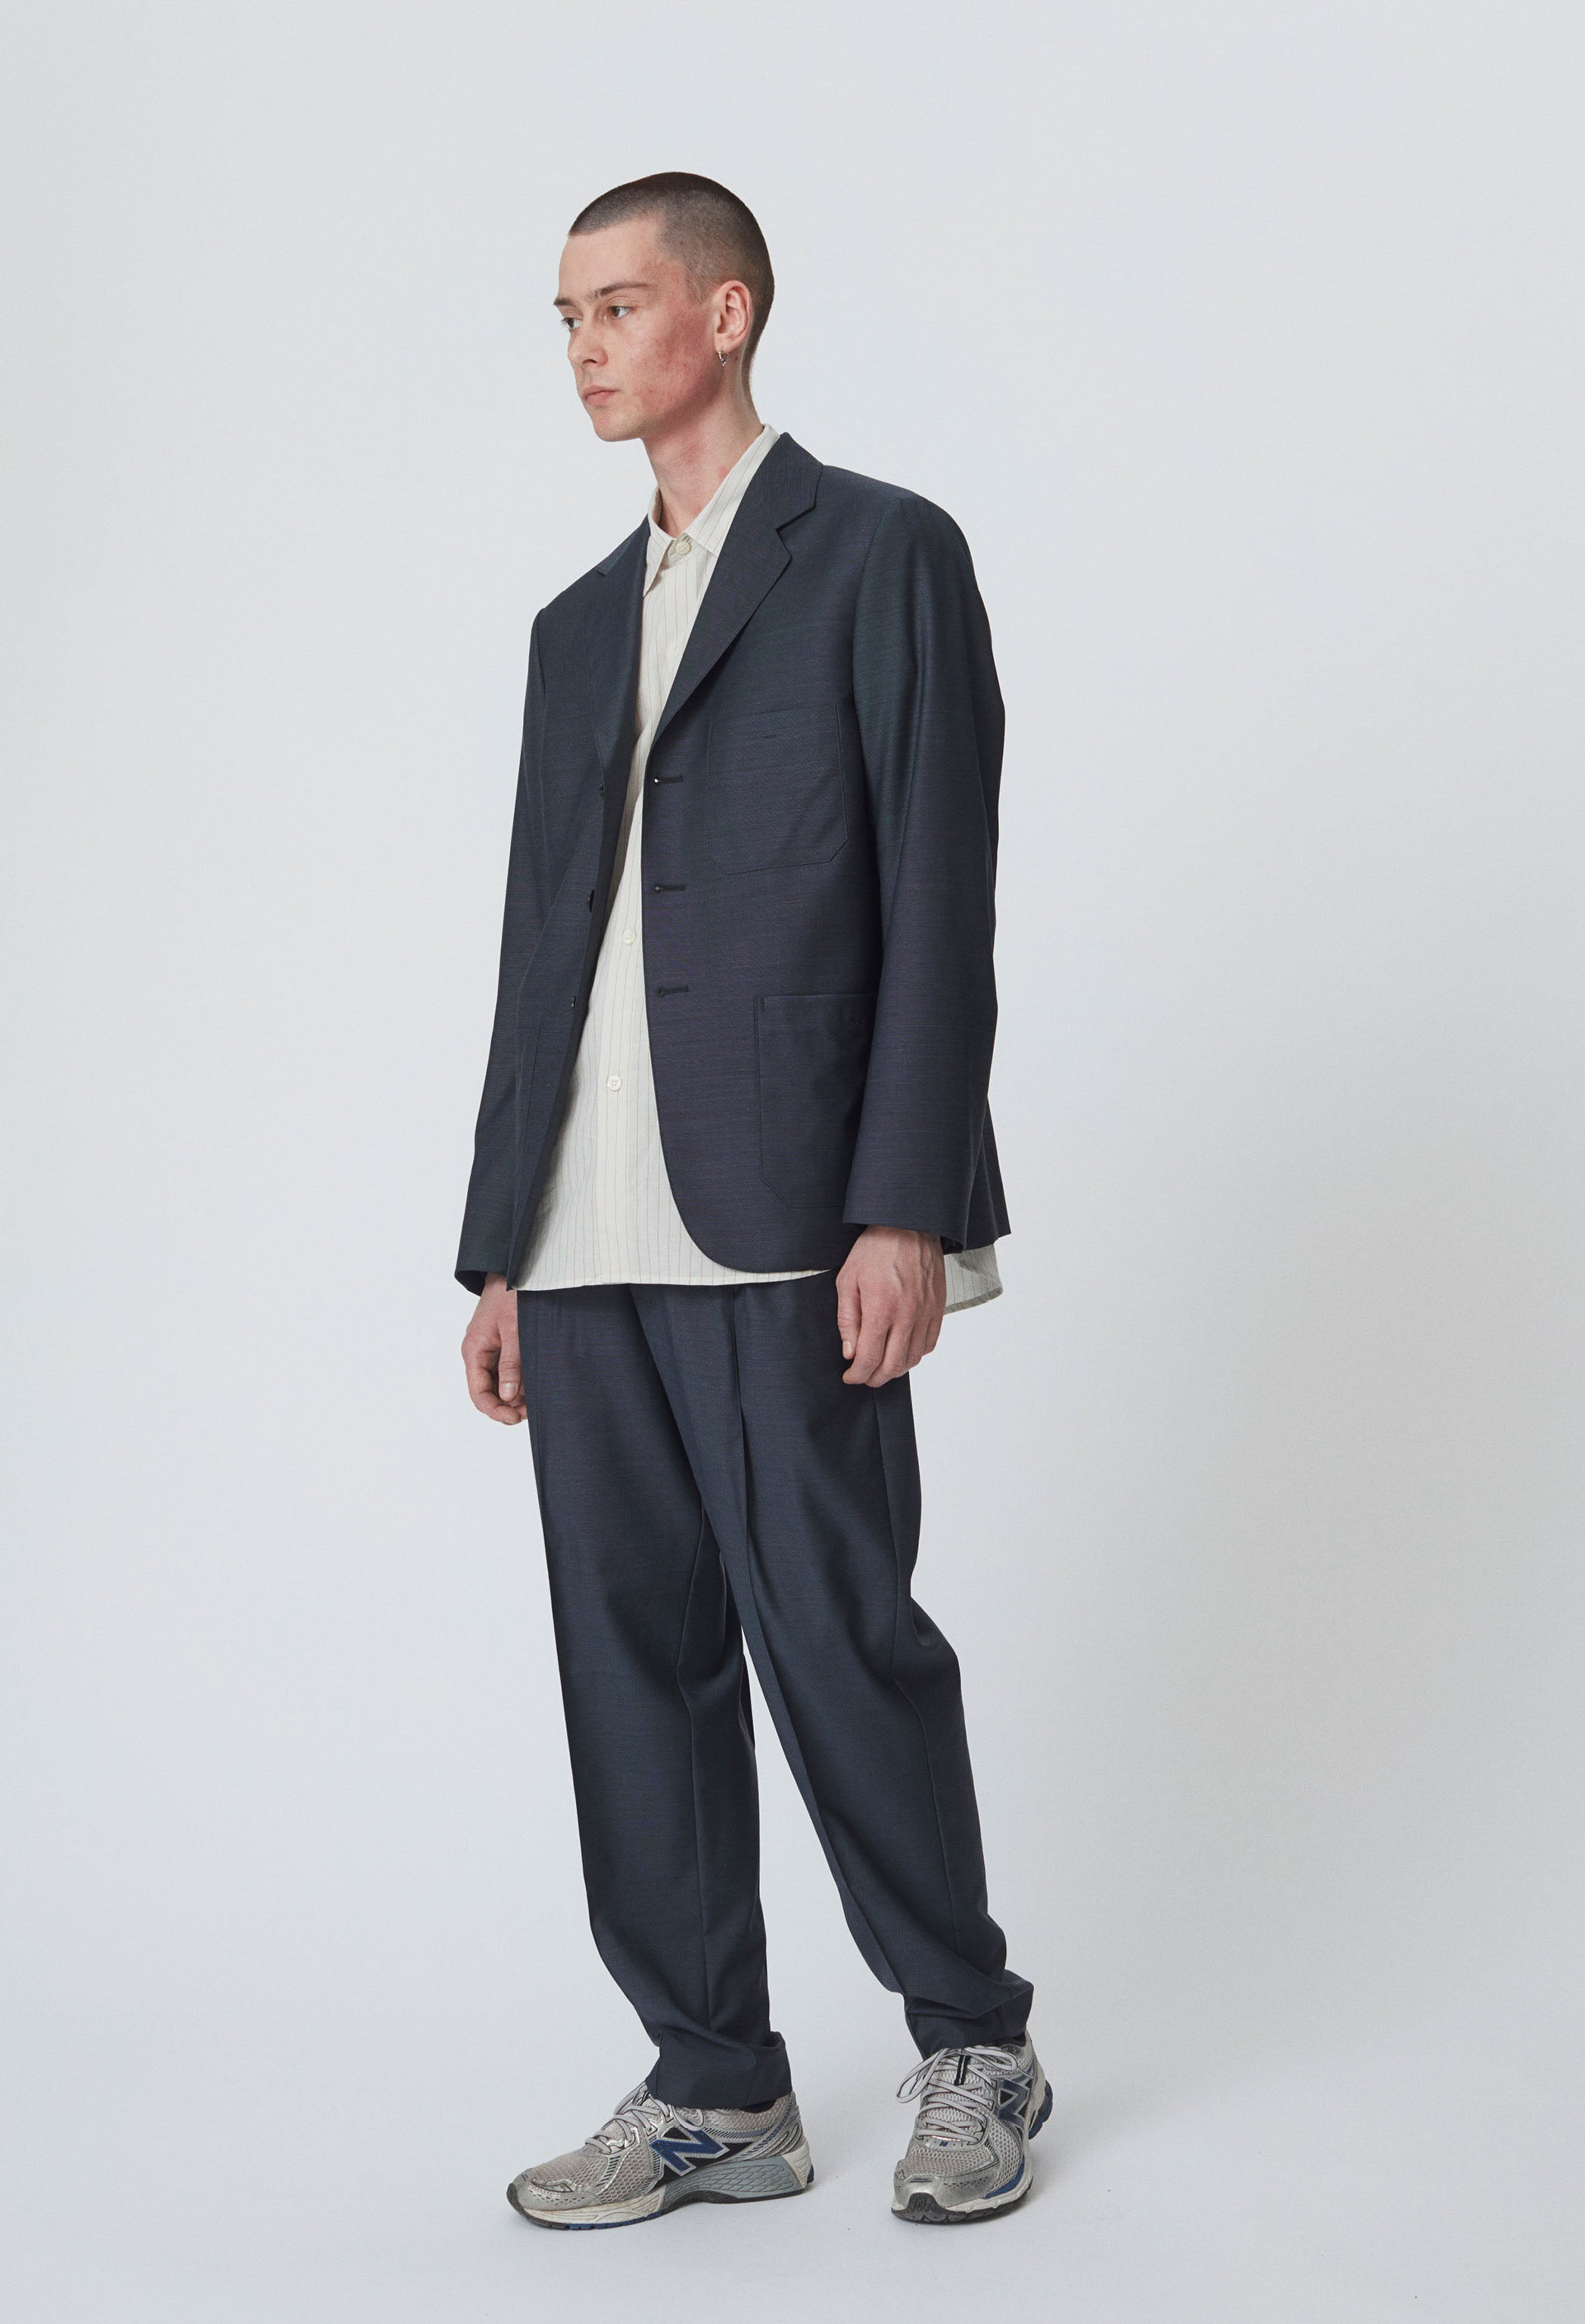 01 BLAZER - MIDNIGHT GREY